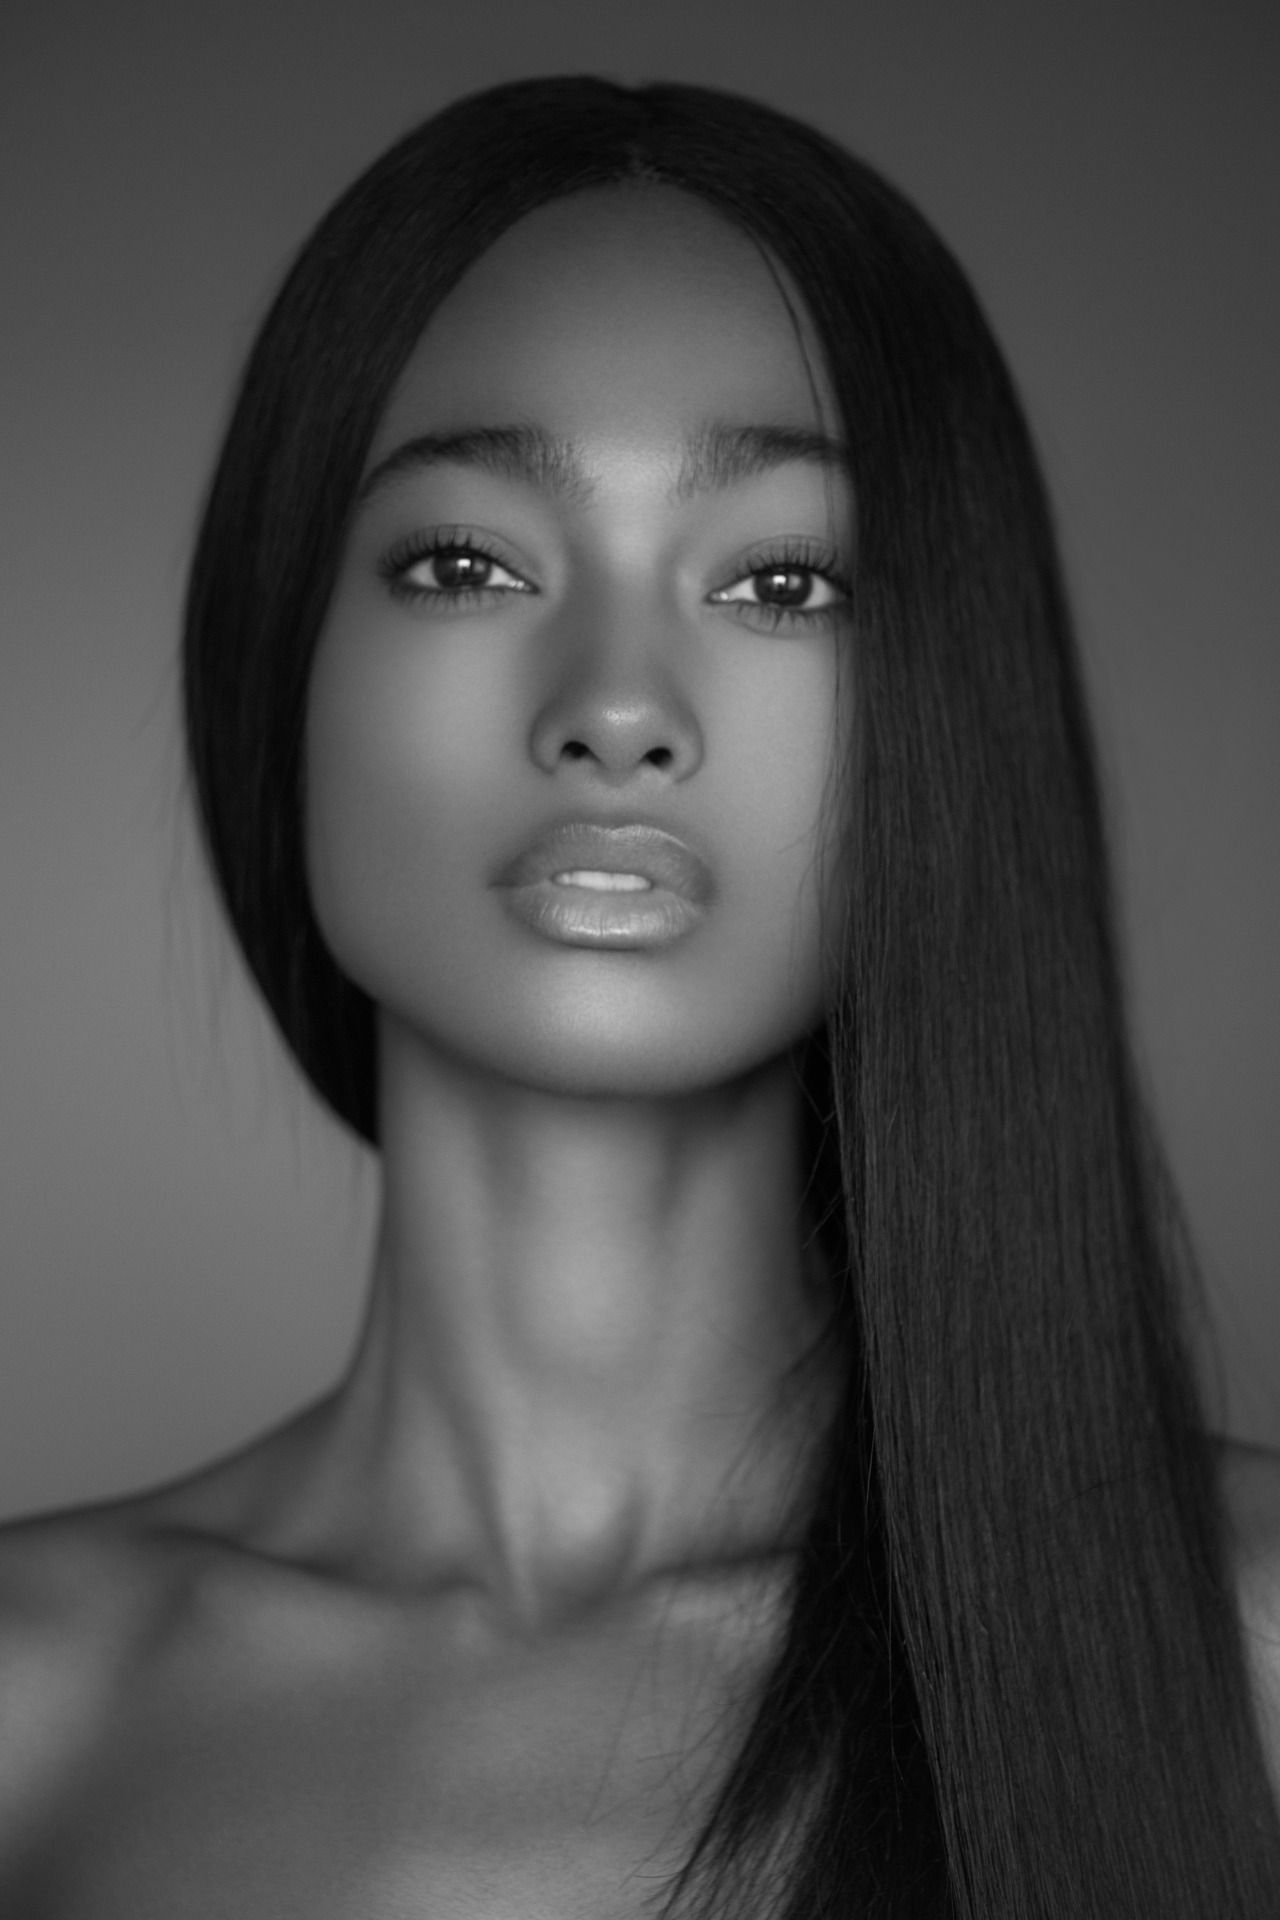 Was specially beautiful black model question interesting